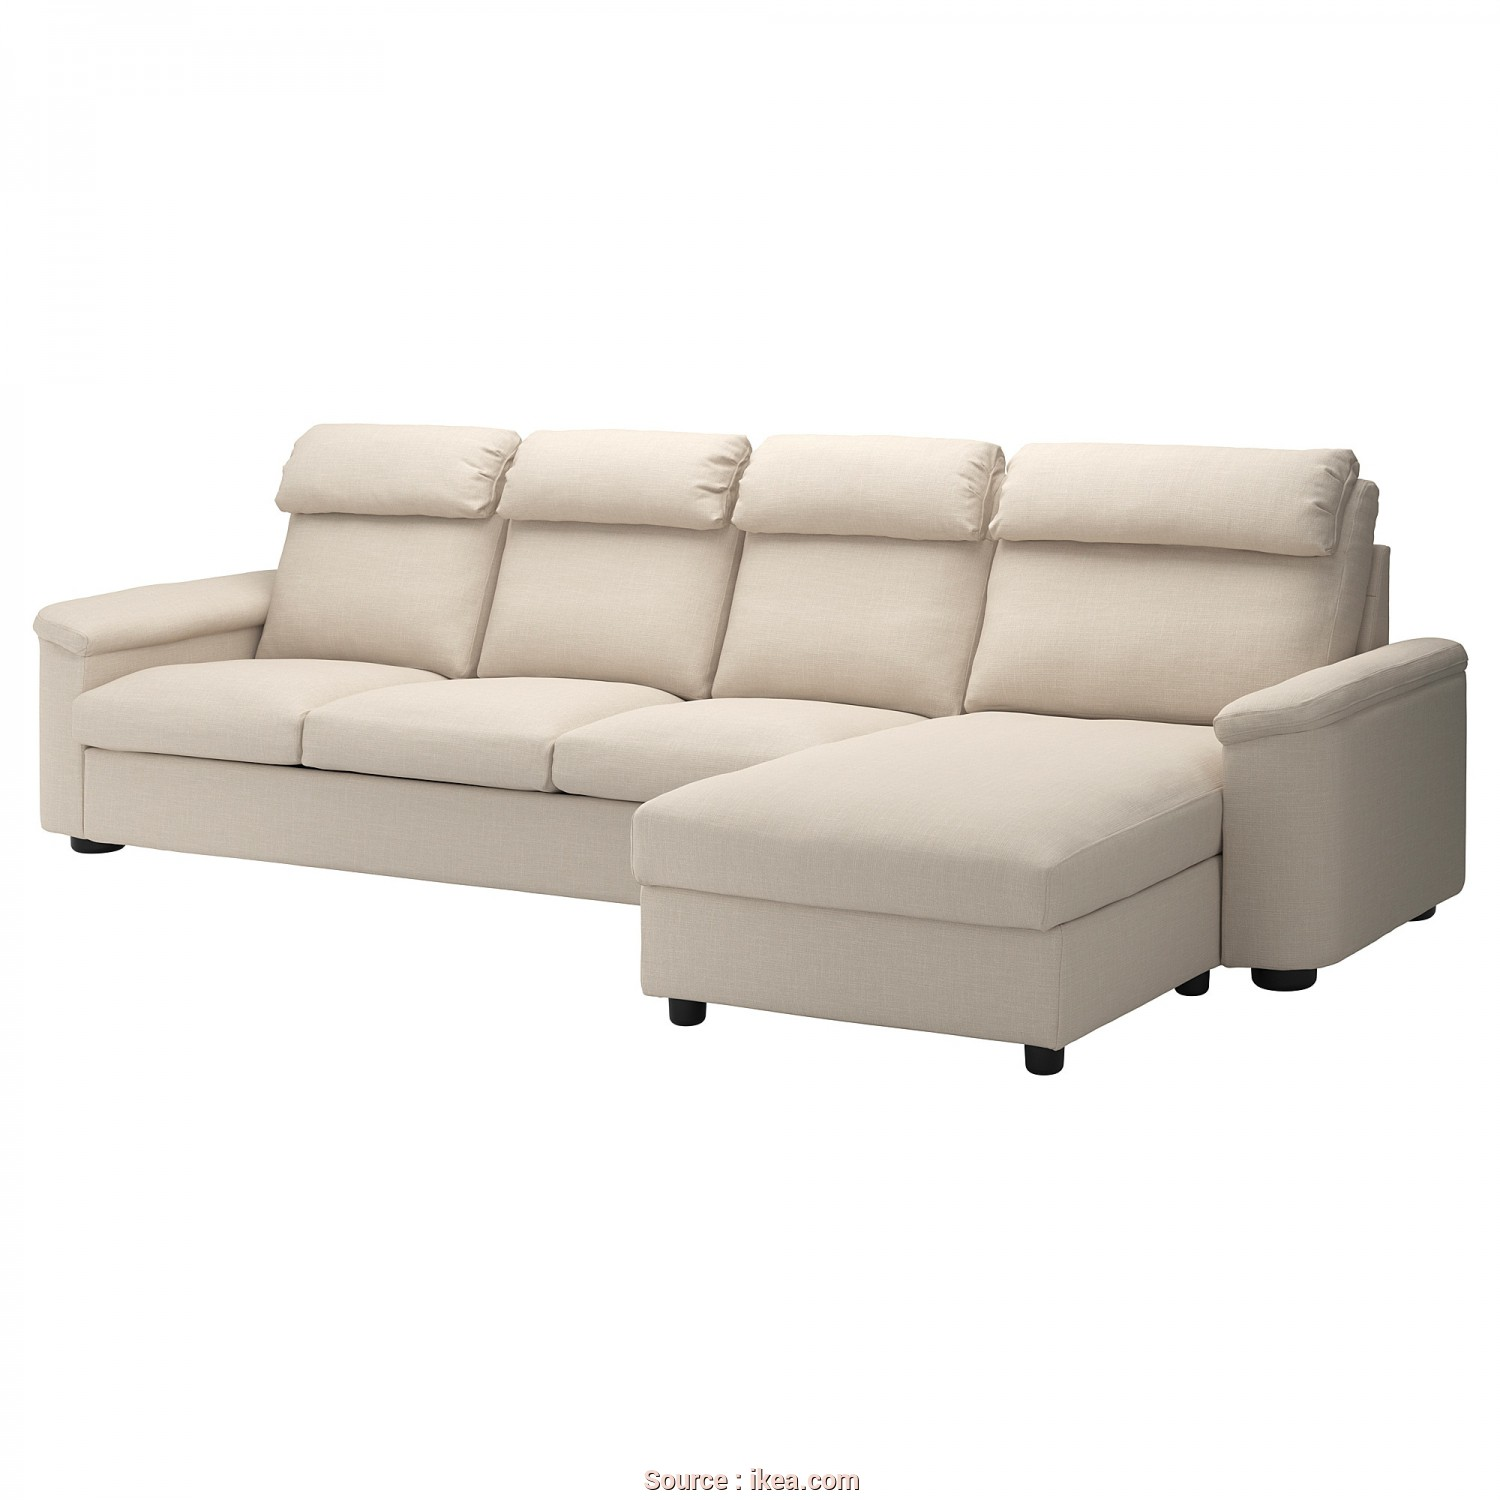 Ikea Klippan 4 Seater Sofa Uk, Originale IKEA LIDHULT 4-Seat Sofa, Cover Is Easy To Keep Clean Since It Is